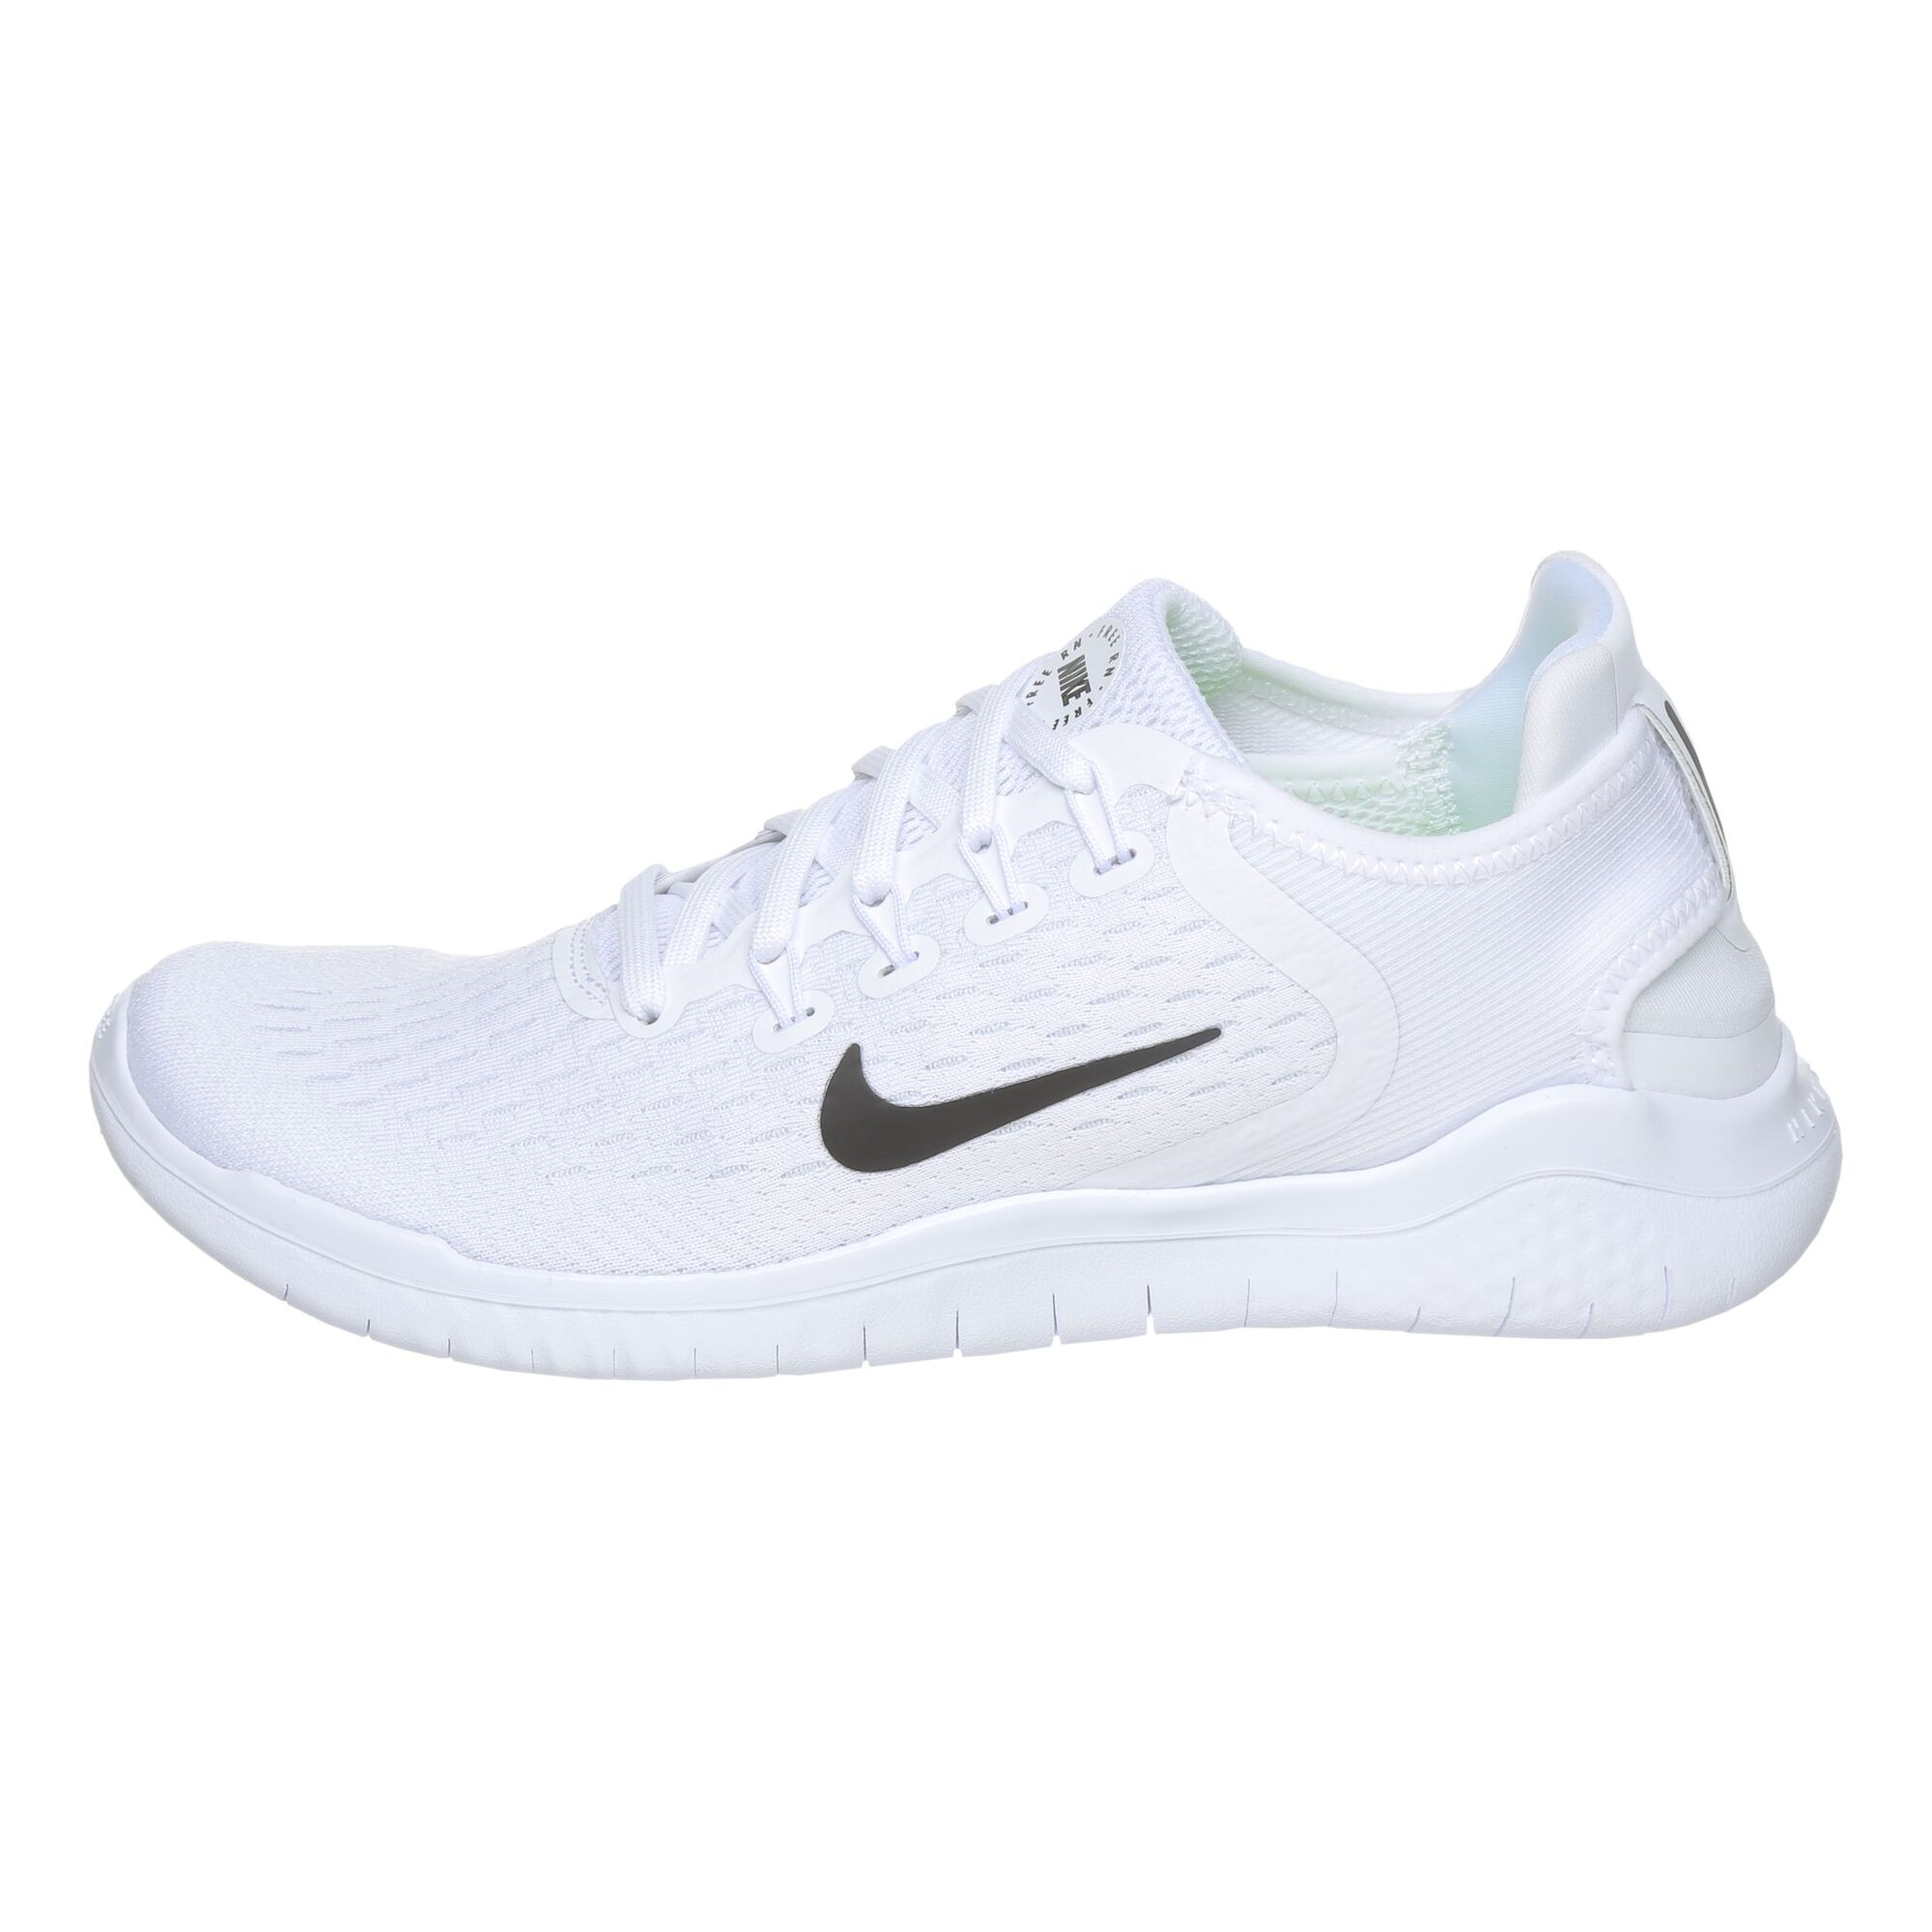 6d8a8c23f0eaa buy Nike Free Run 2018 Natural Running Shoe Women - White